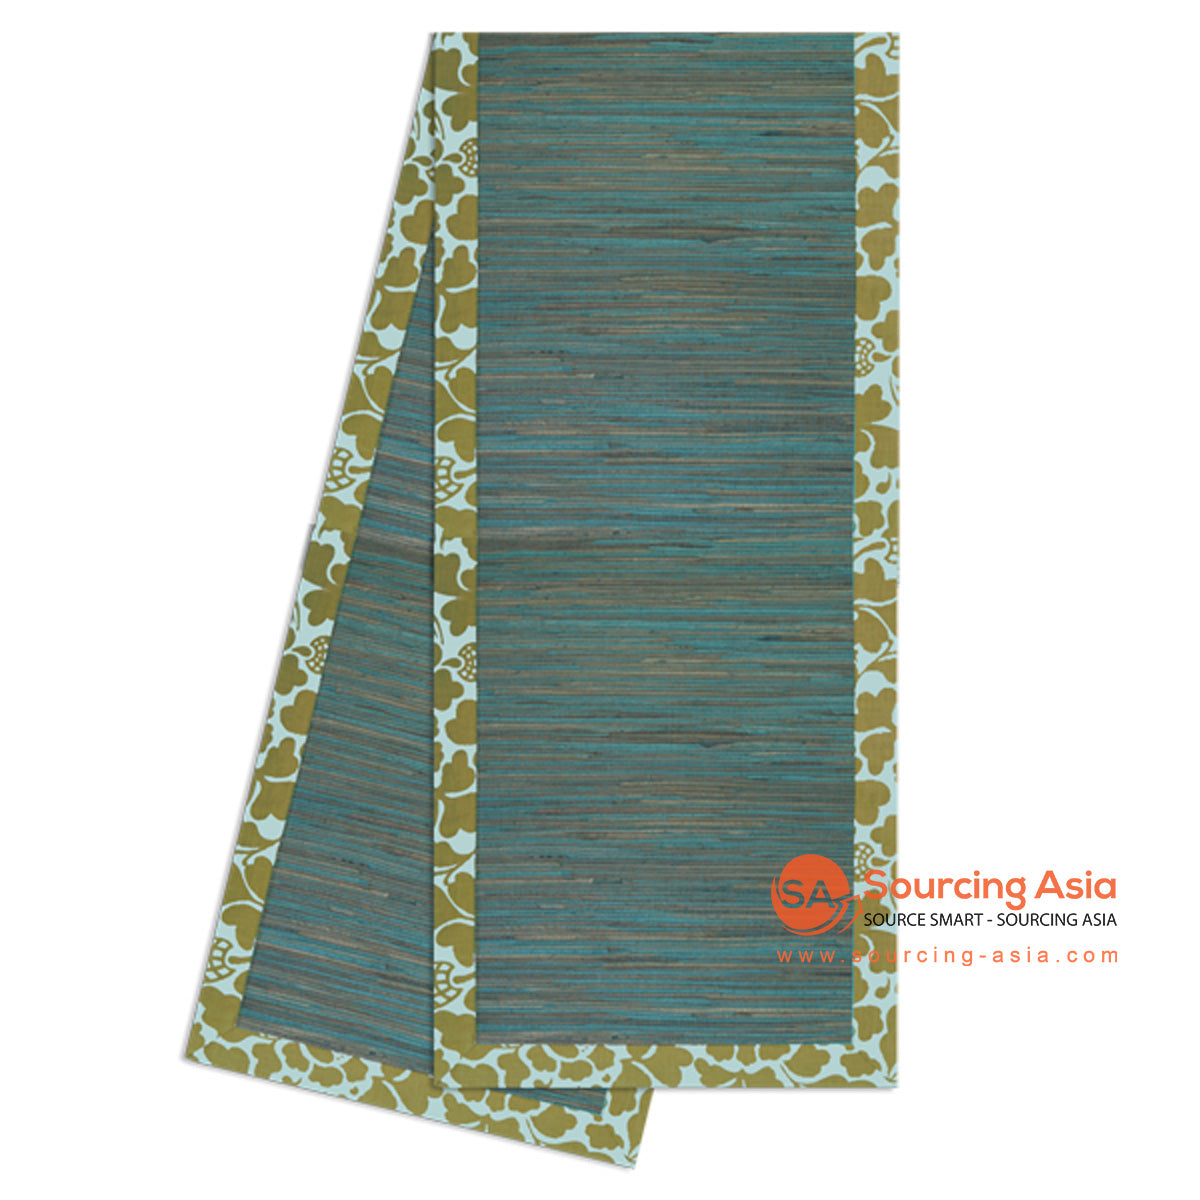 BZN033C-200 SANDALWOOD TABLE RUNNER